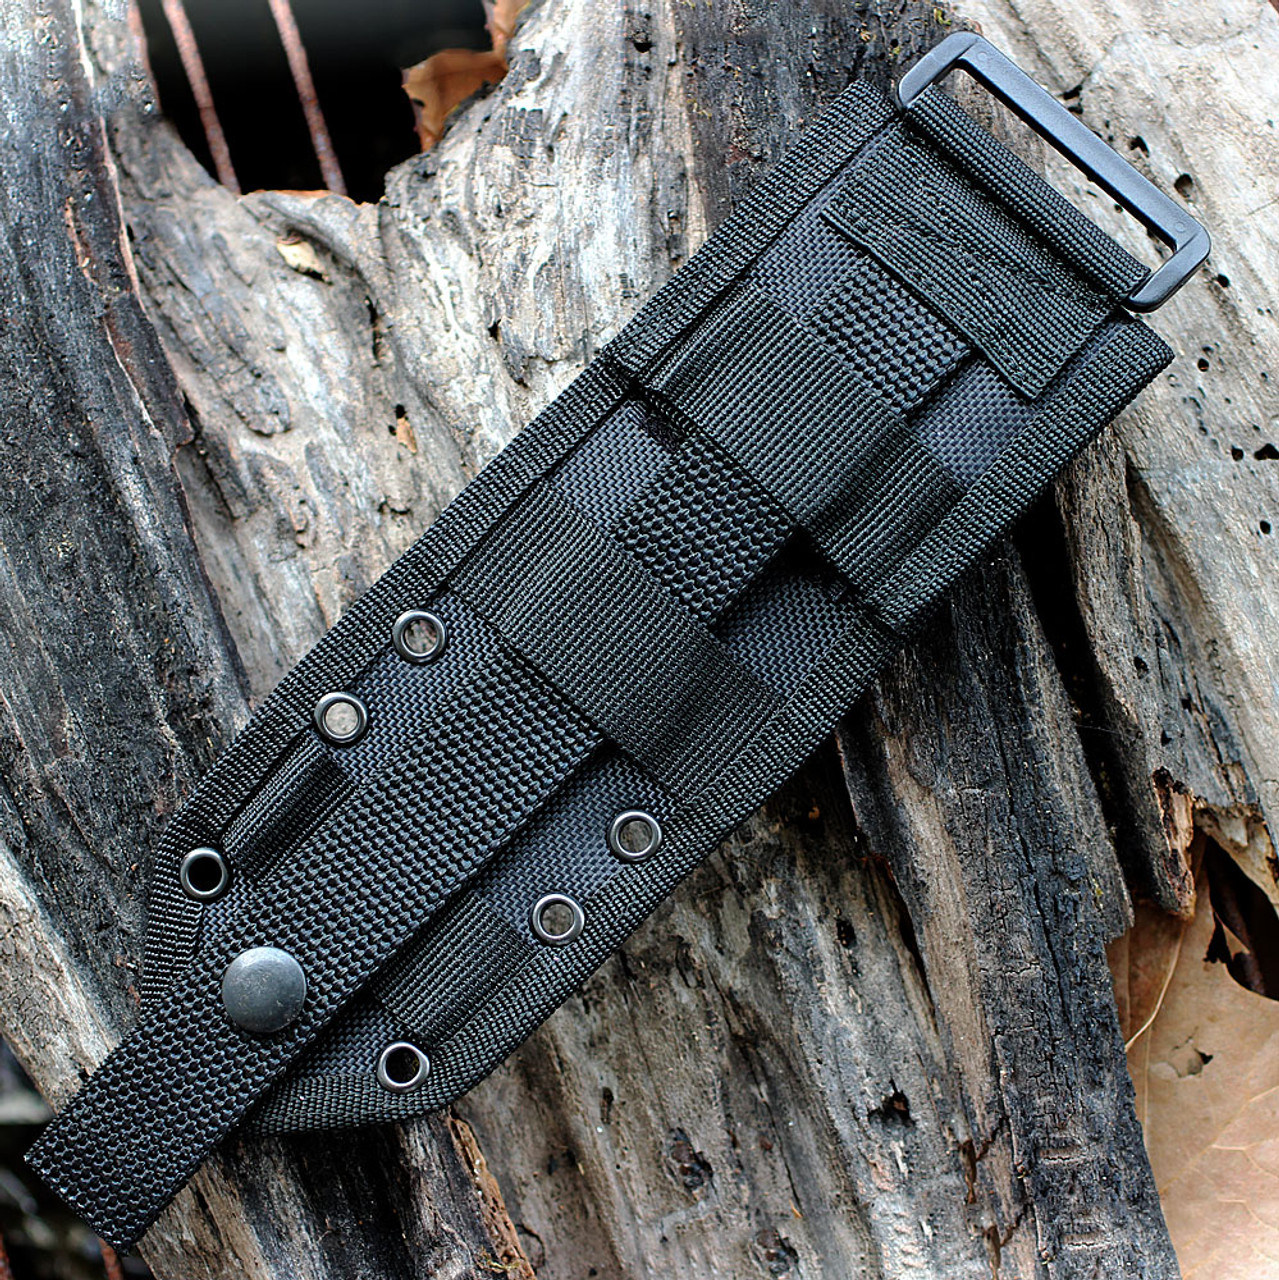 ESEE Knives, 4P-MB, Black Blade, Plain Edge, Micarta Handle, Coyote Brown Molded Sheath and Clip Plate w/ Molle Back, ESEE-4P-MB